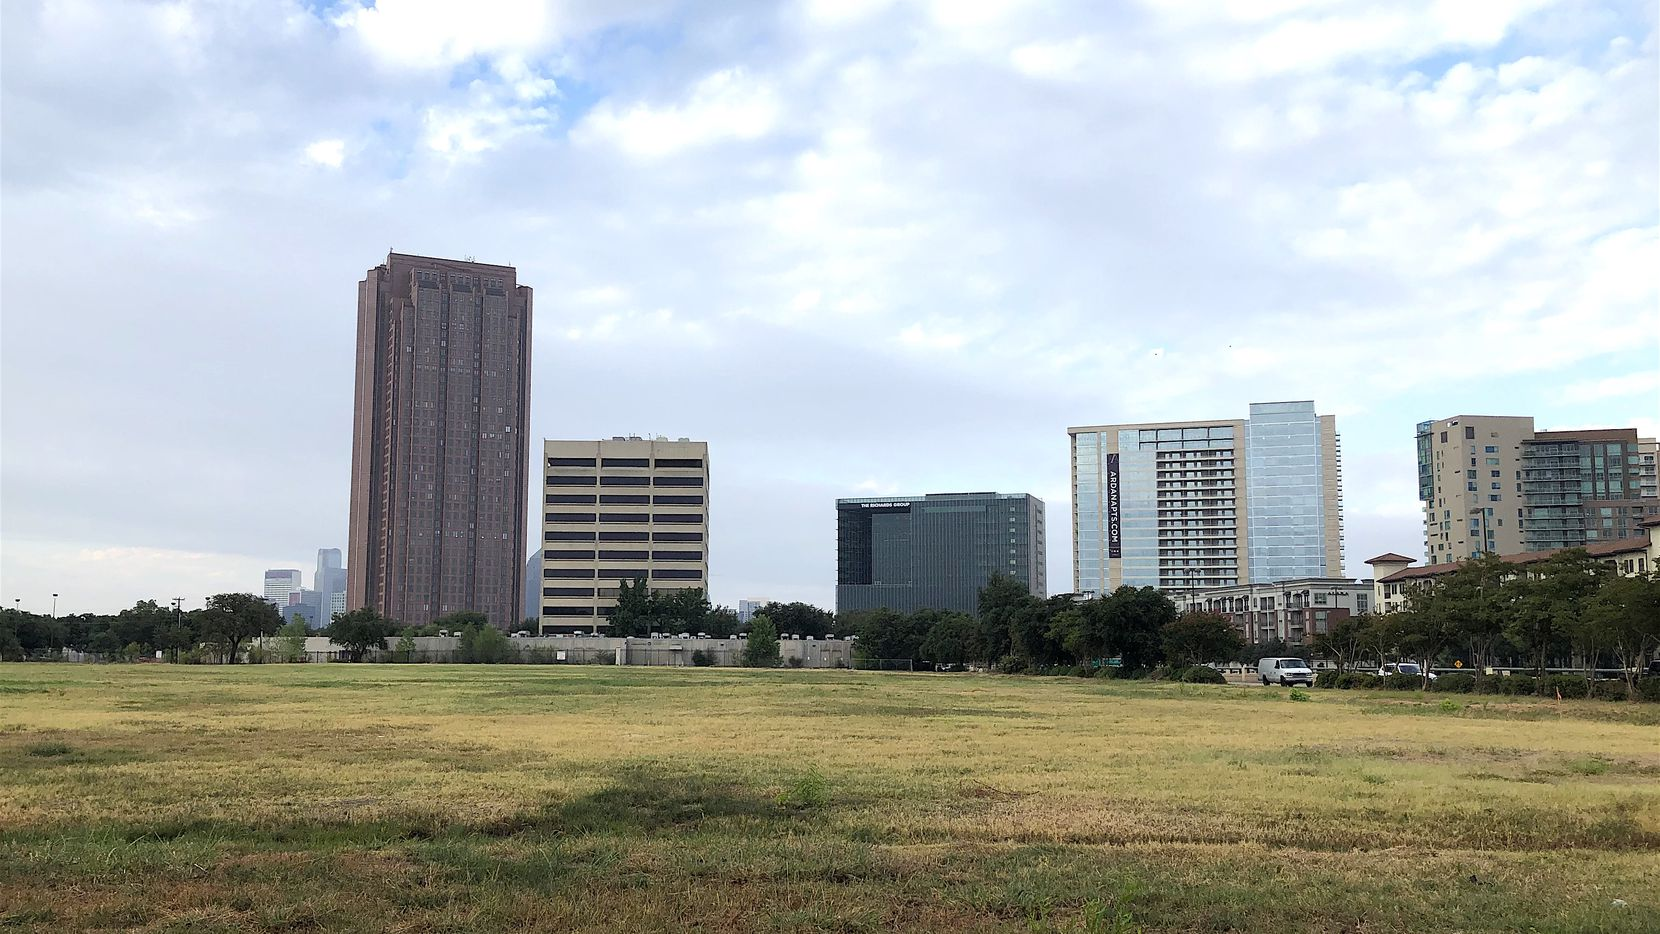 Developer Trammell Crow sold the vacant block at U.S. Highway 75 and Carroll Avenue.